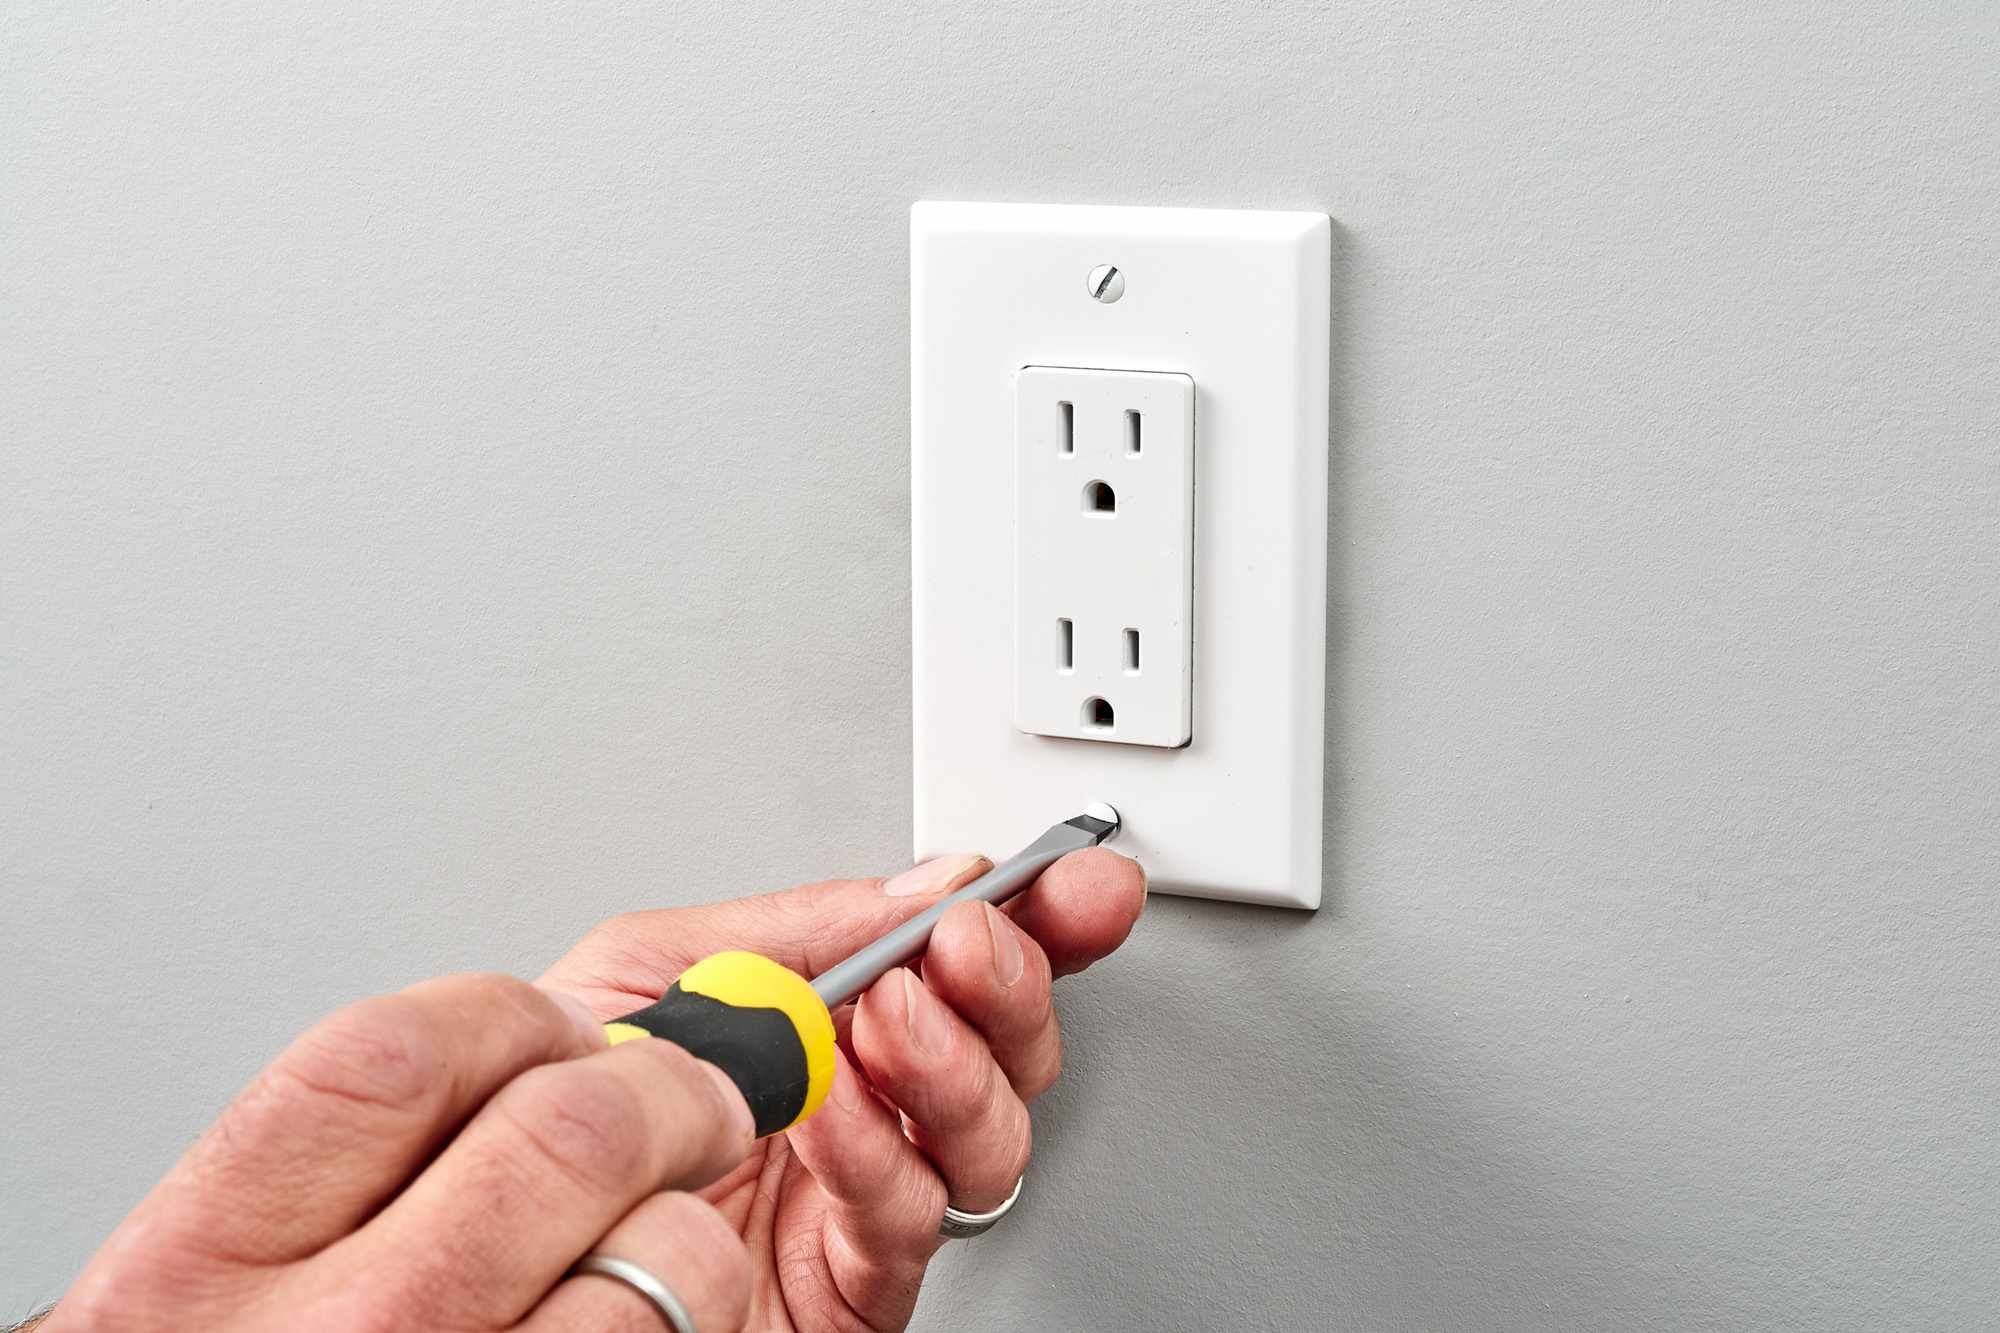 Warm outlet replaced with new outlet and secured with screwdriver